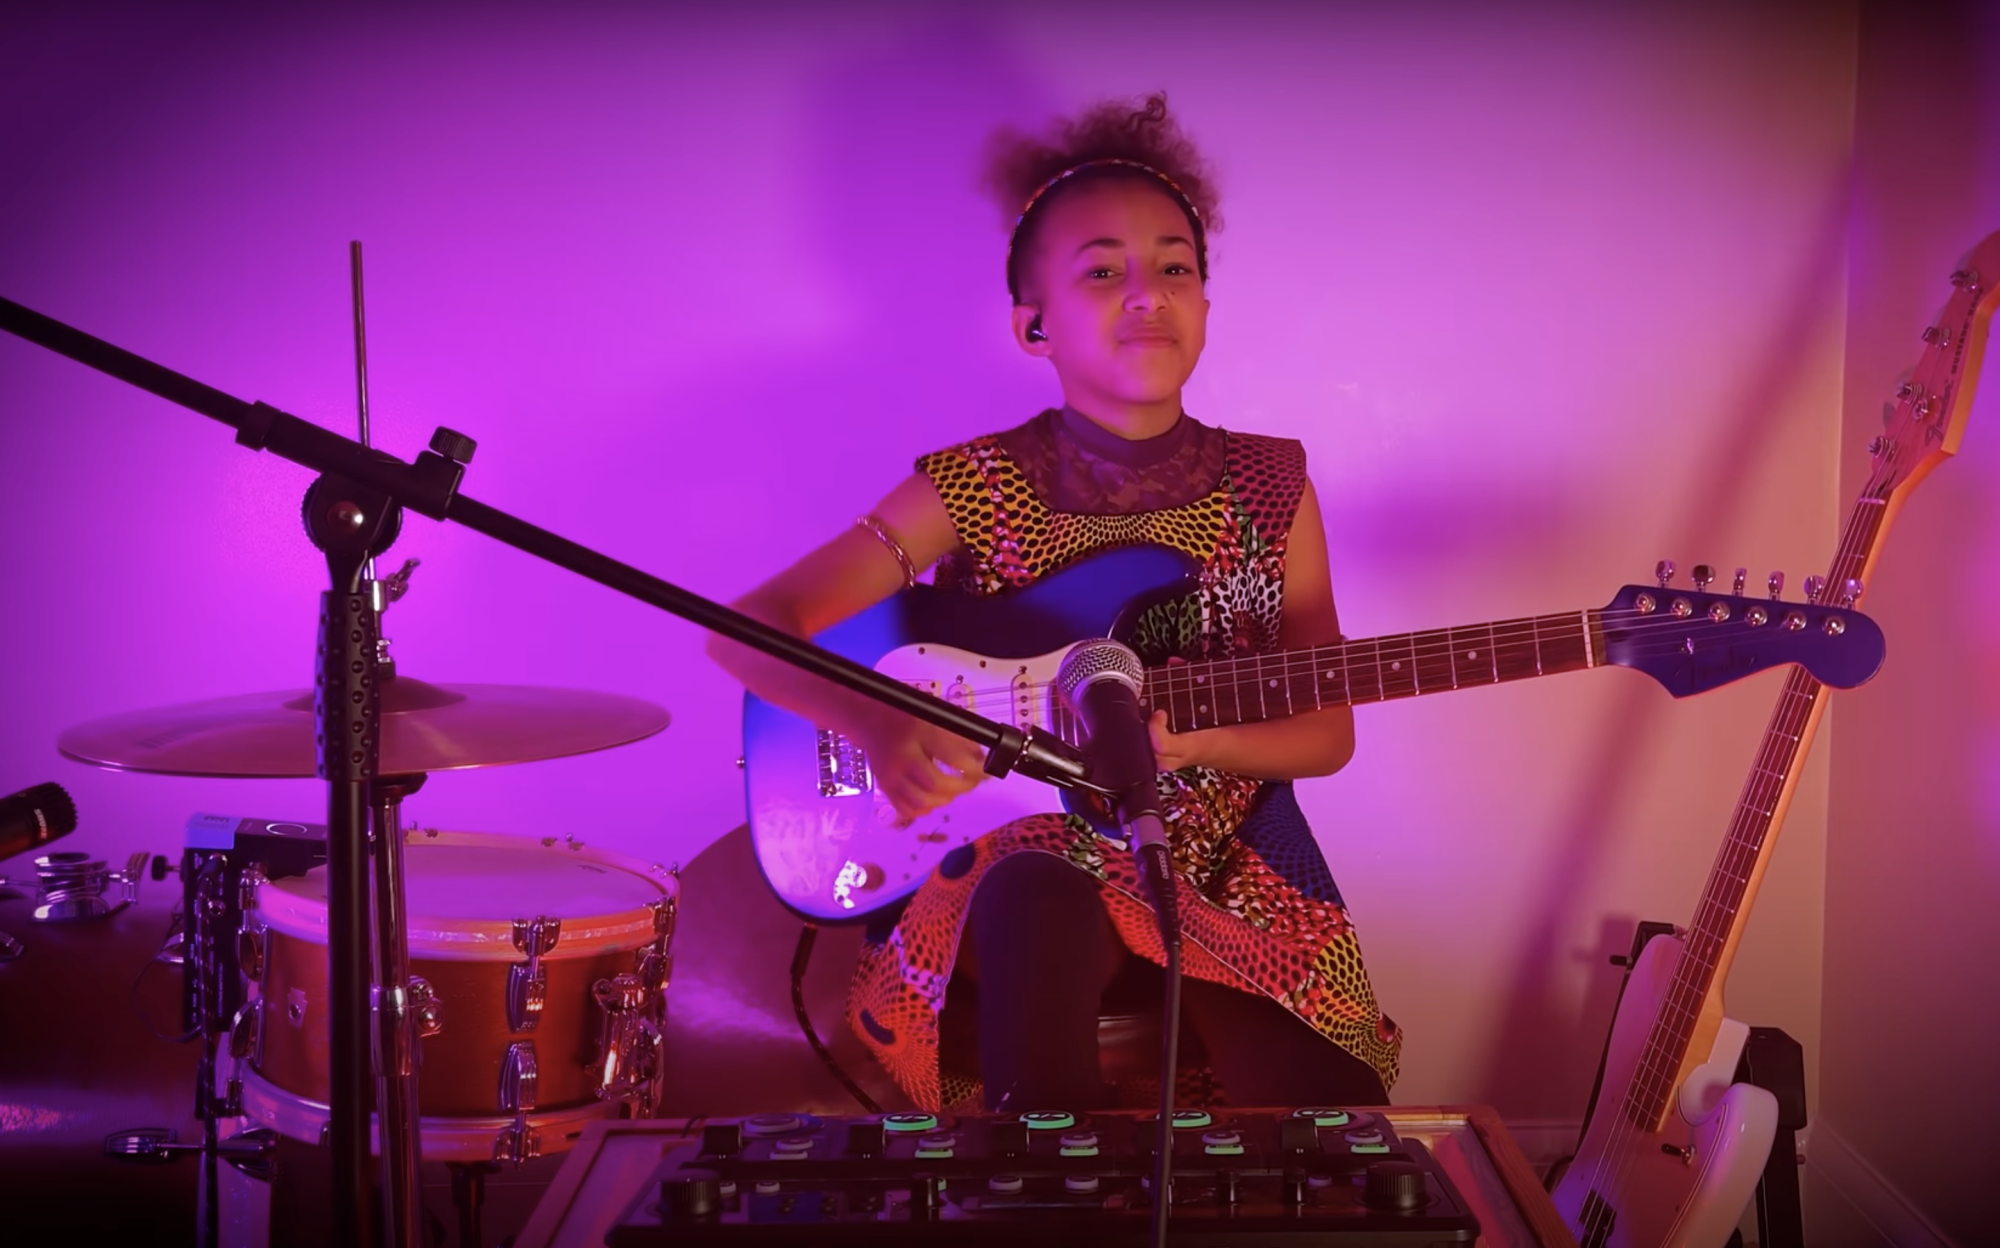 Nandi Bushell Gets Flea's Approval With 'Under the Bridge' Cover